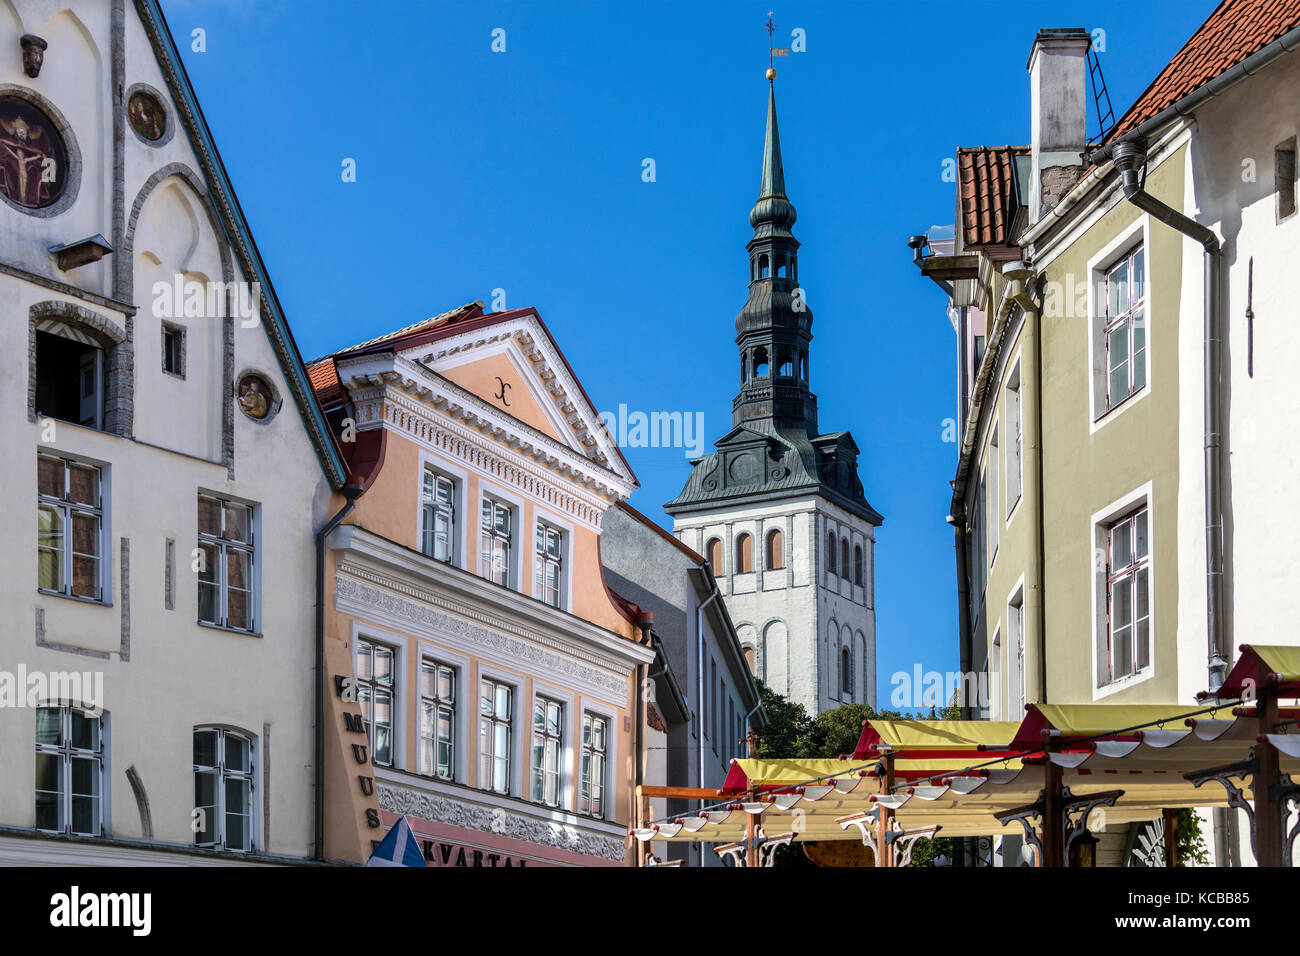 St. Nicholas Church (Niguliste Kirik) in the old town area of the city of Tallinn in Estonia. - Stock Image